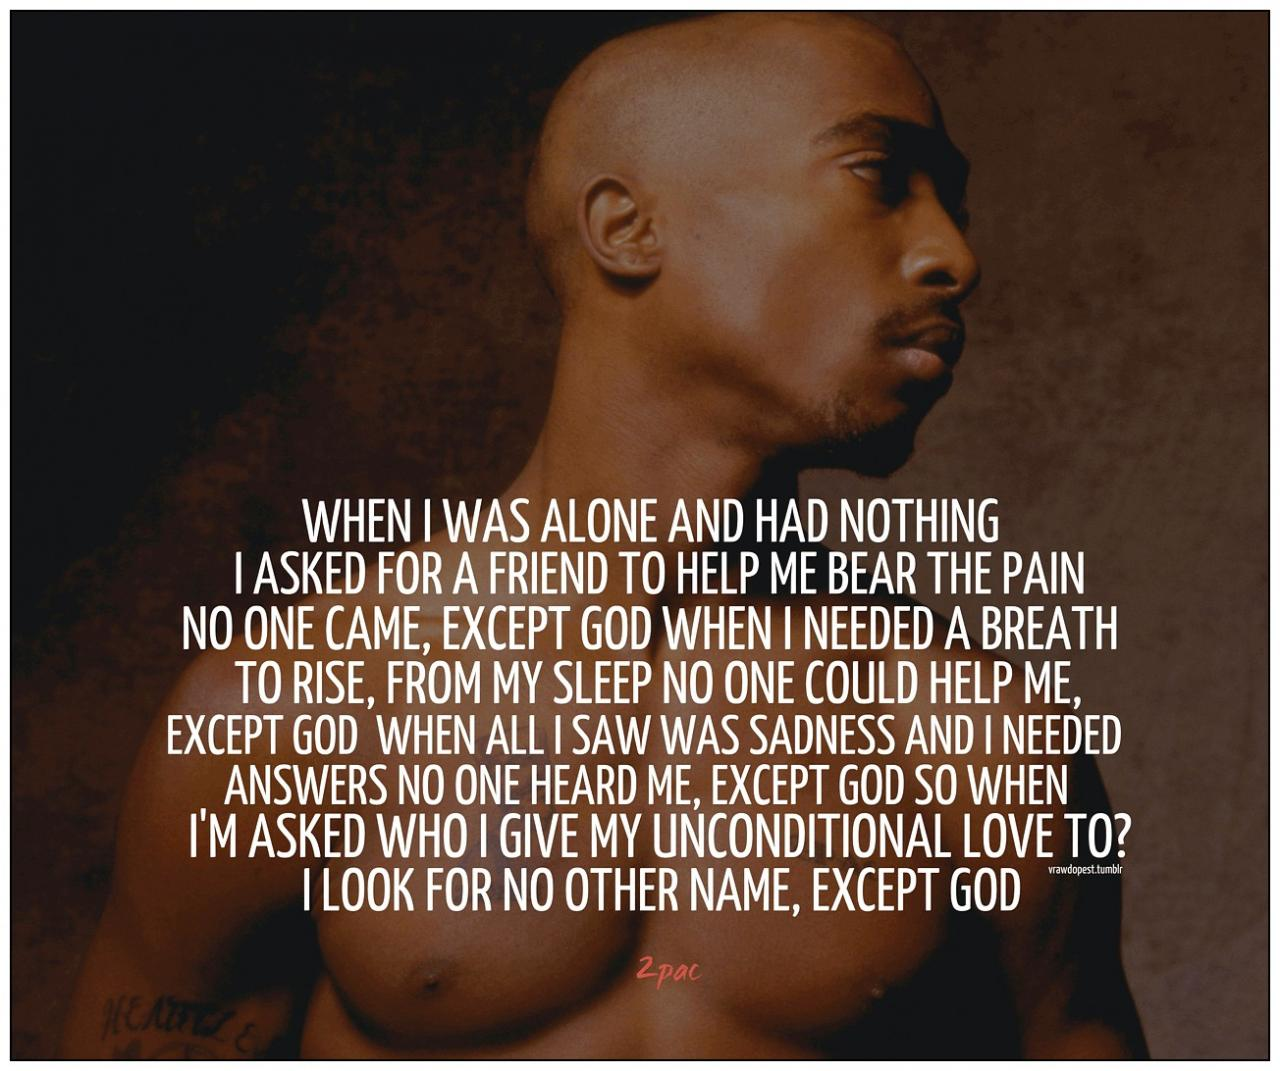 Tupac Unconditional Love Quotes Tupac Poems The Best Poems Pinterest